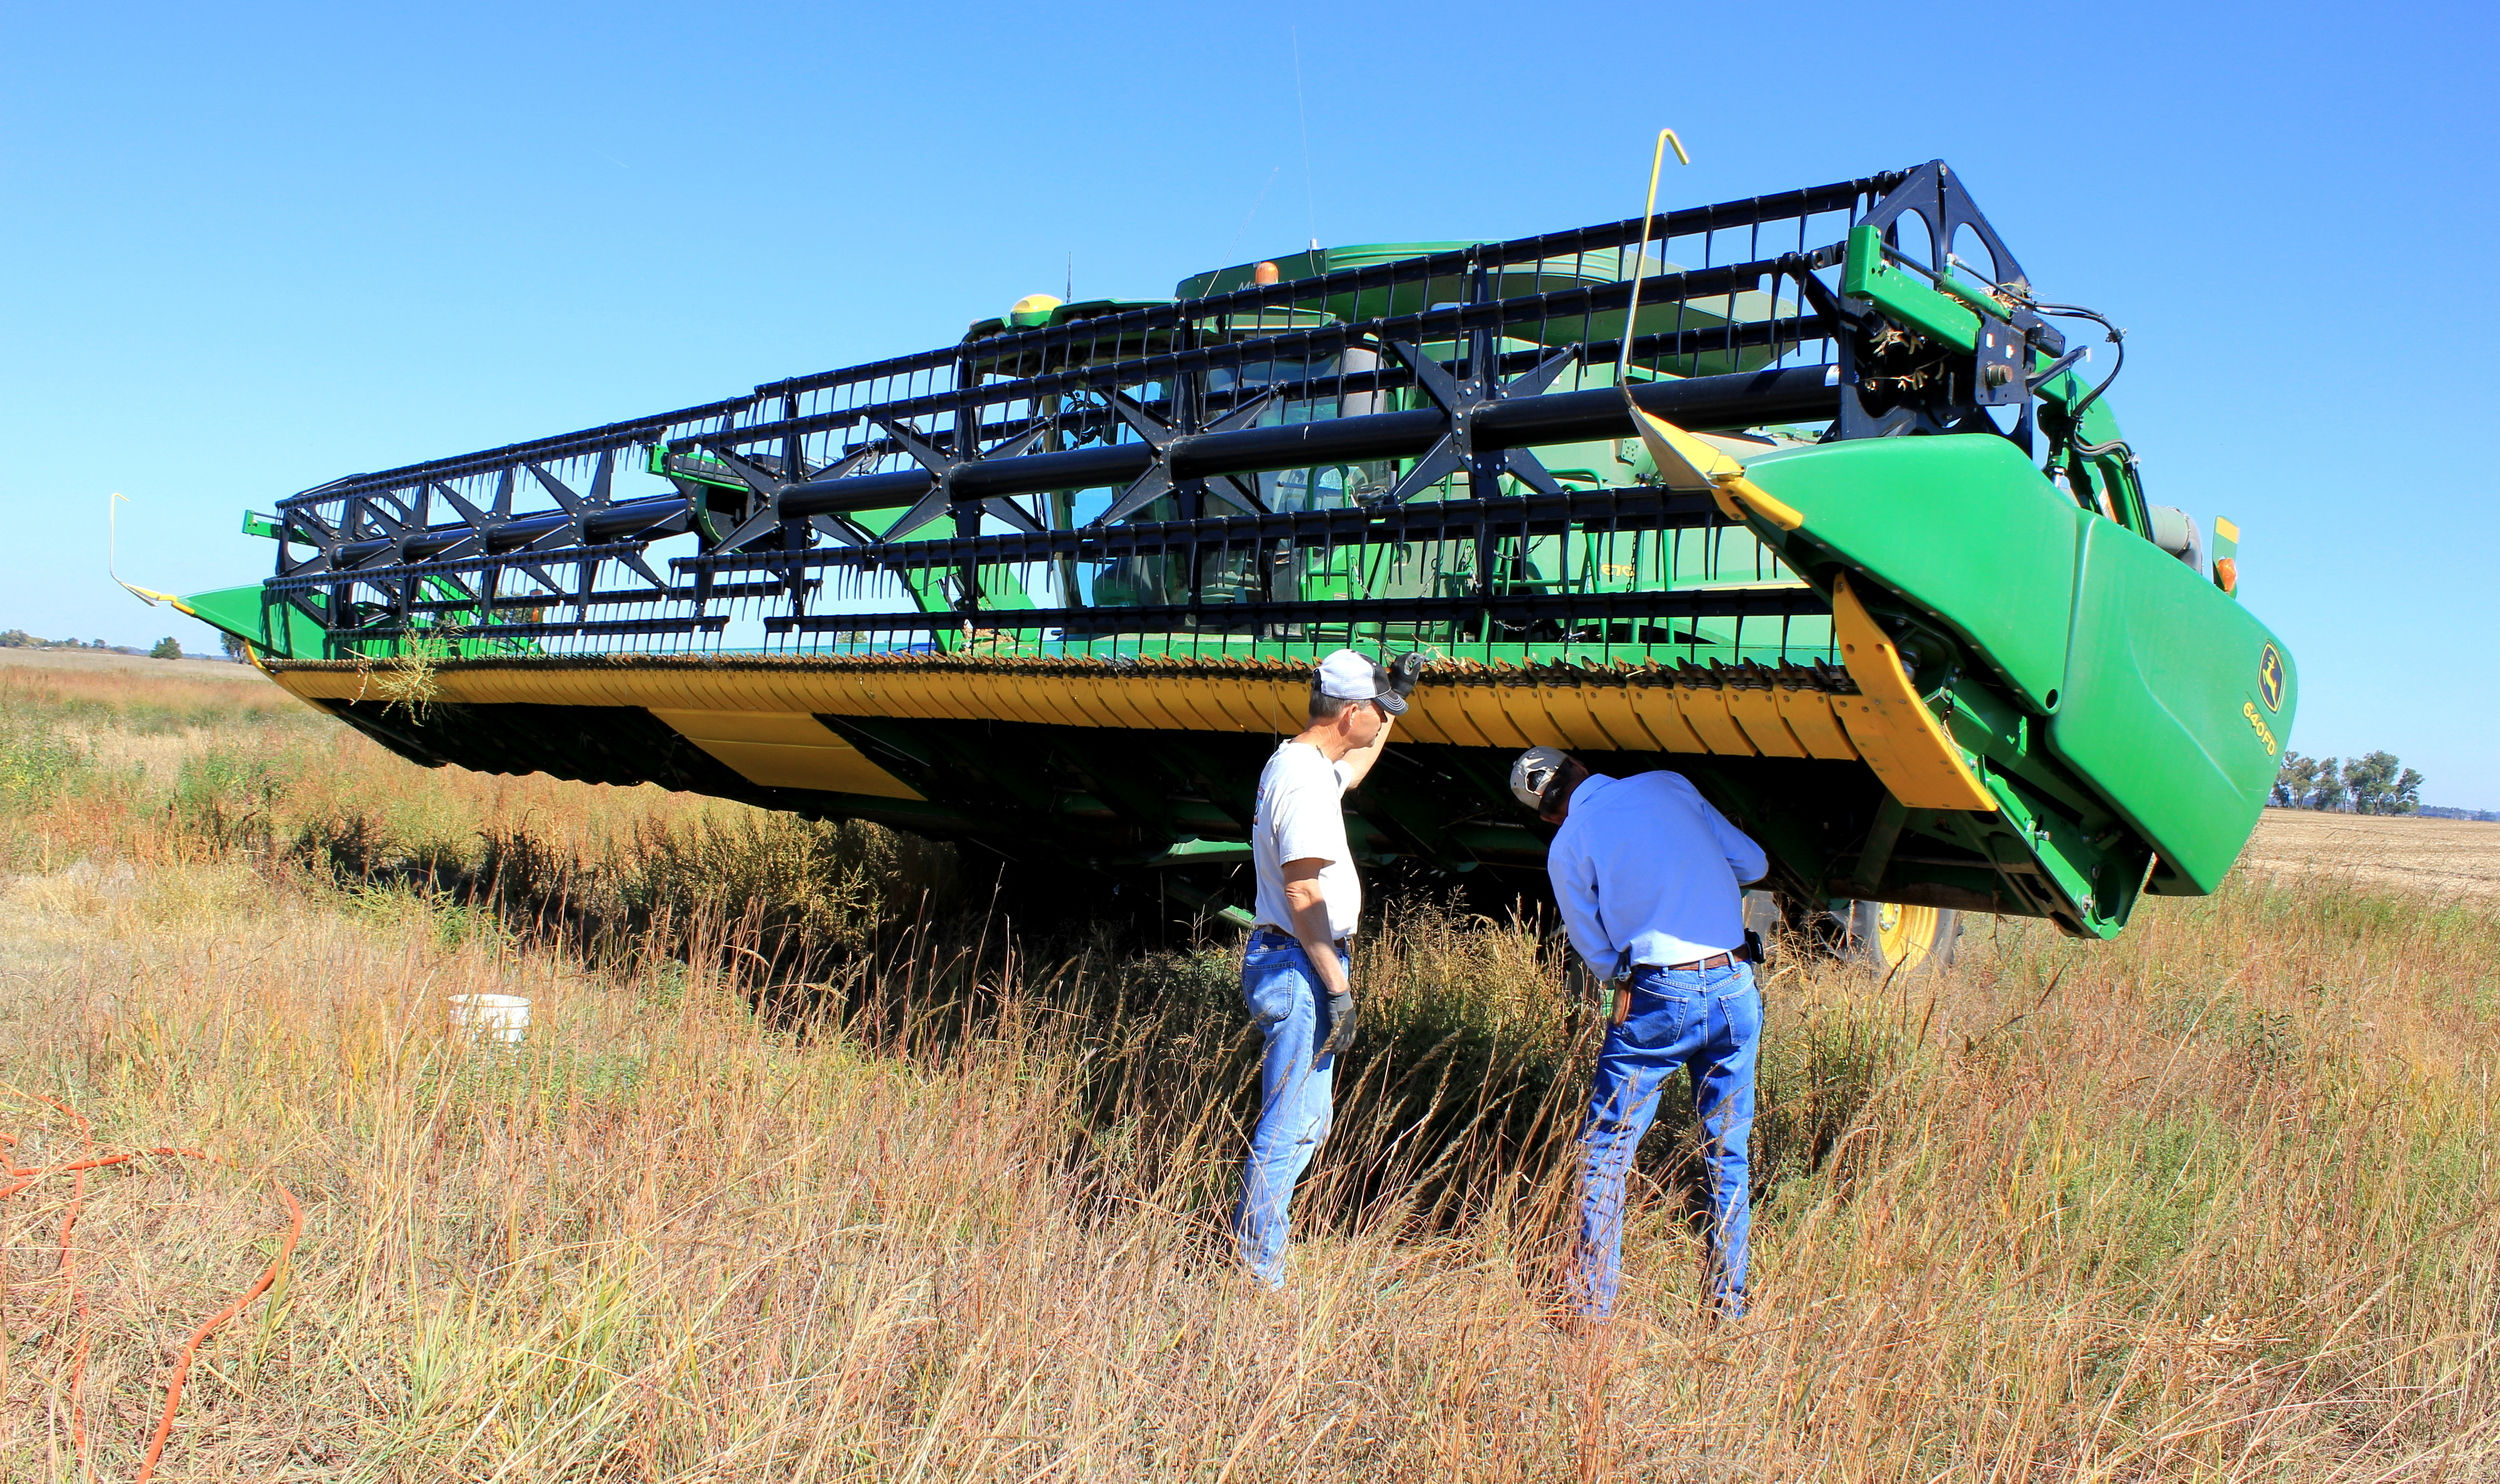 Dad and Vince adjusting the header of the combine to harvest milo